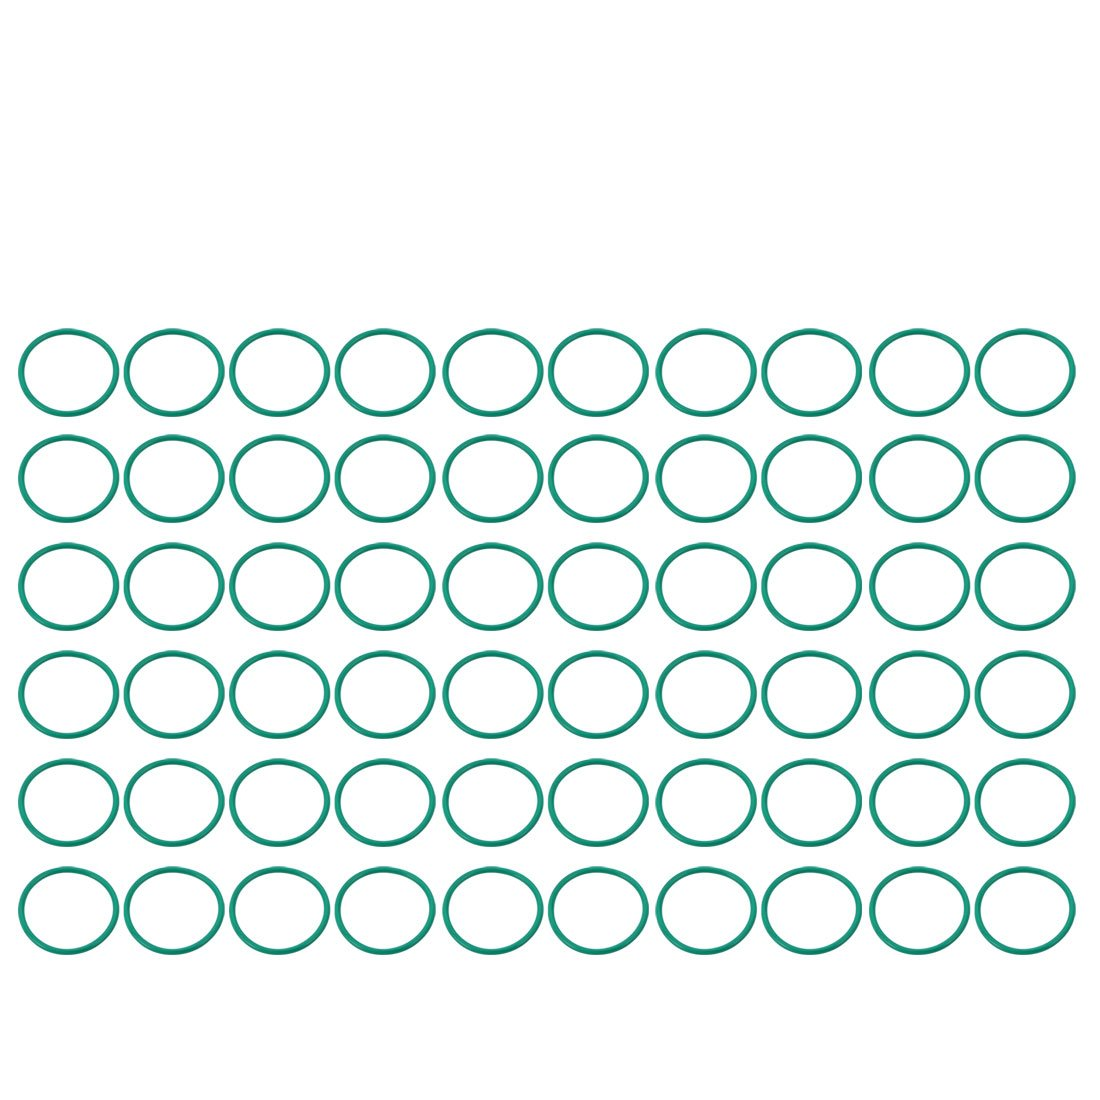 uxcell 60pcs Green 30mm Outer Dia 1.5mm Thickness Sealing Ring O-Shape Rubber Grommet